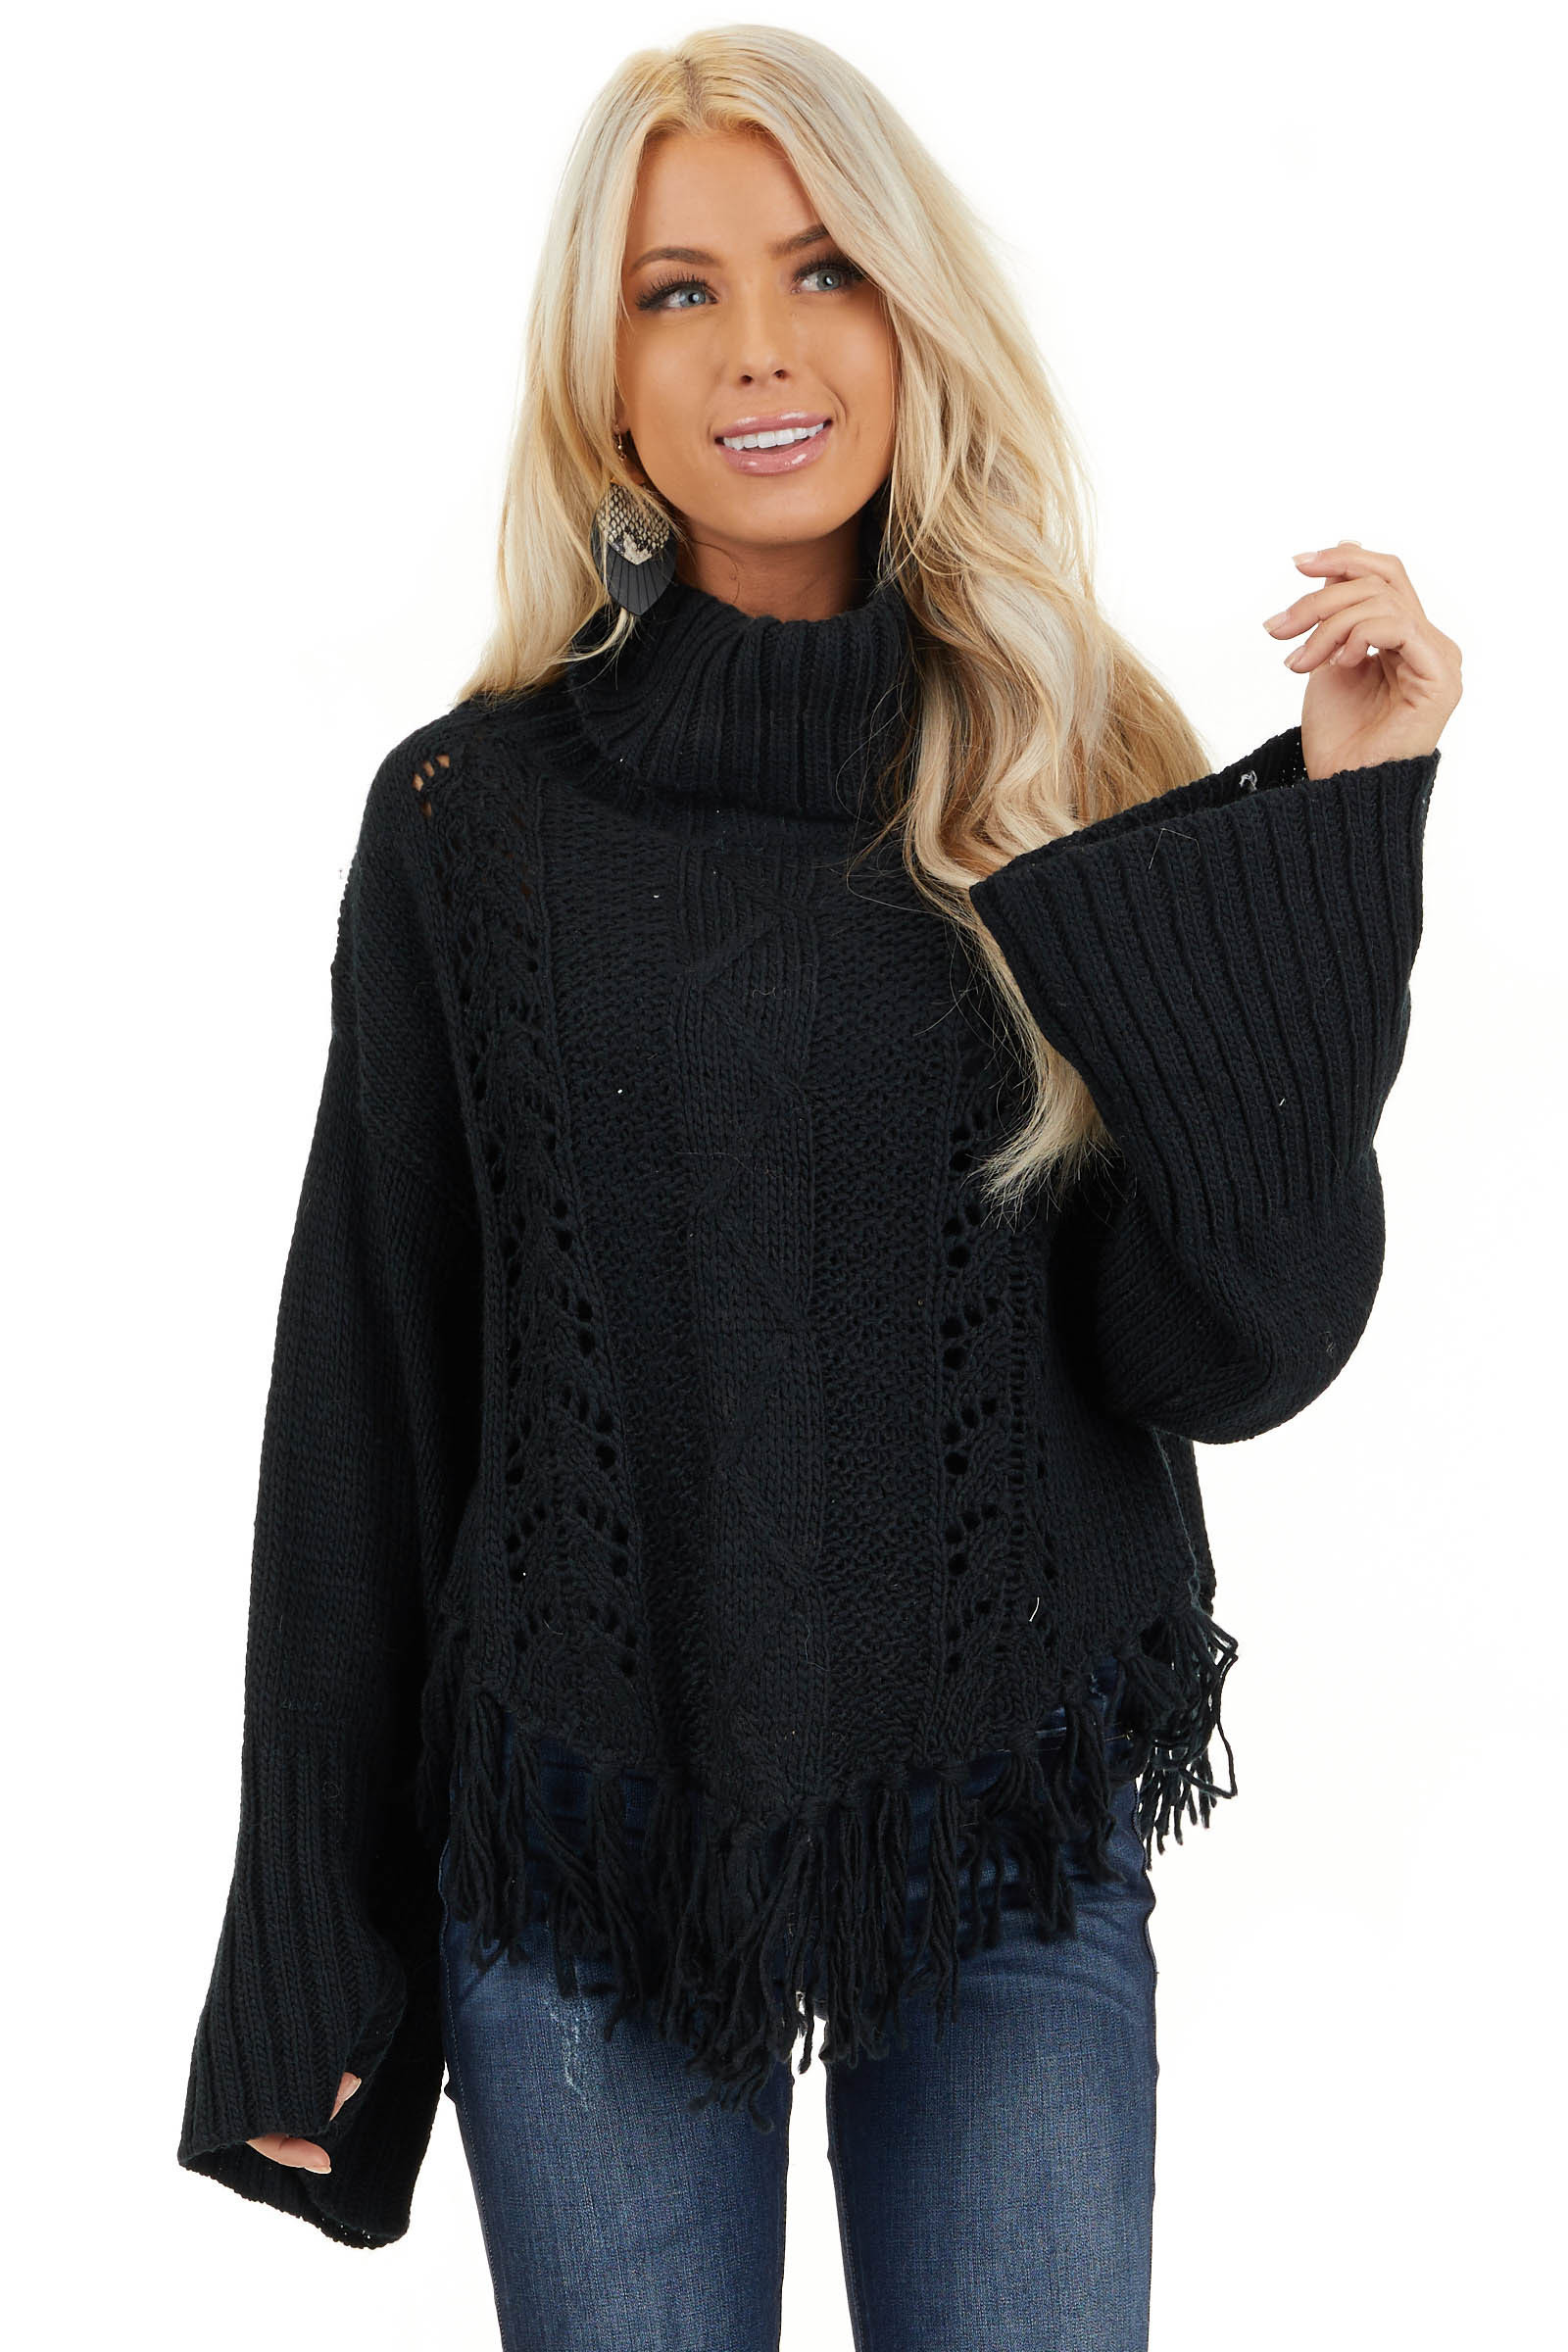 Black Long Sleeve Cable Knit Sweater with Tassel Details front close up